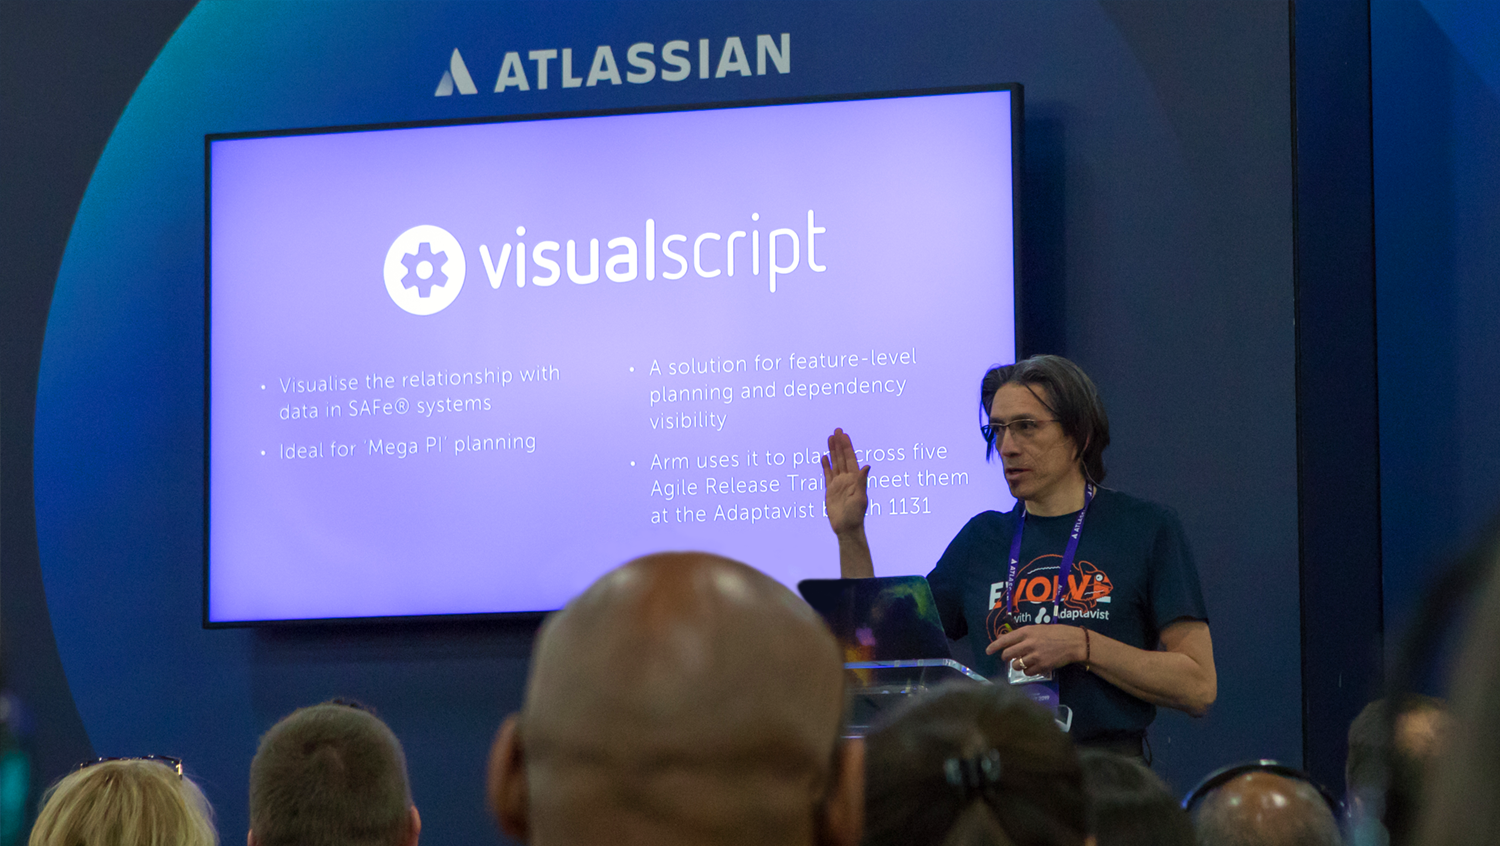 VisualScript at the Atlassian Summit